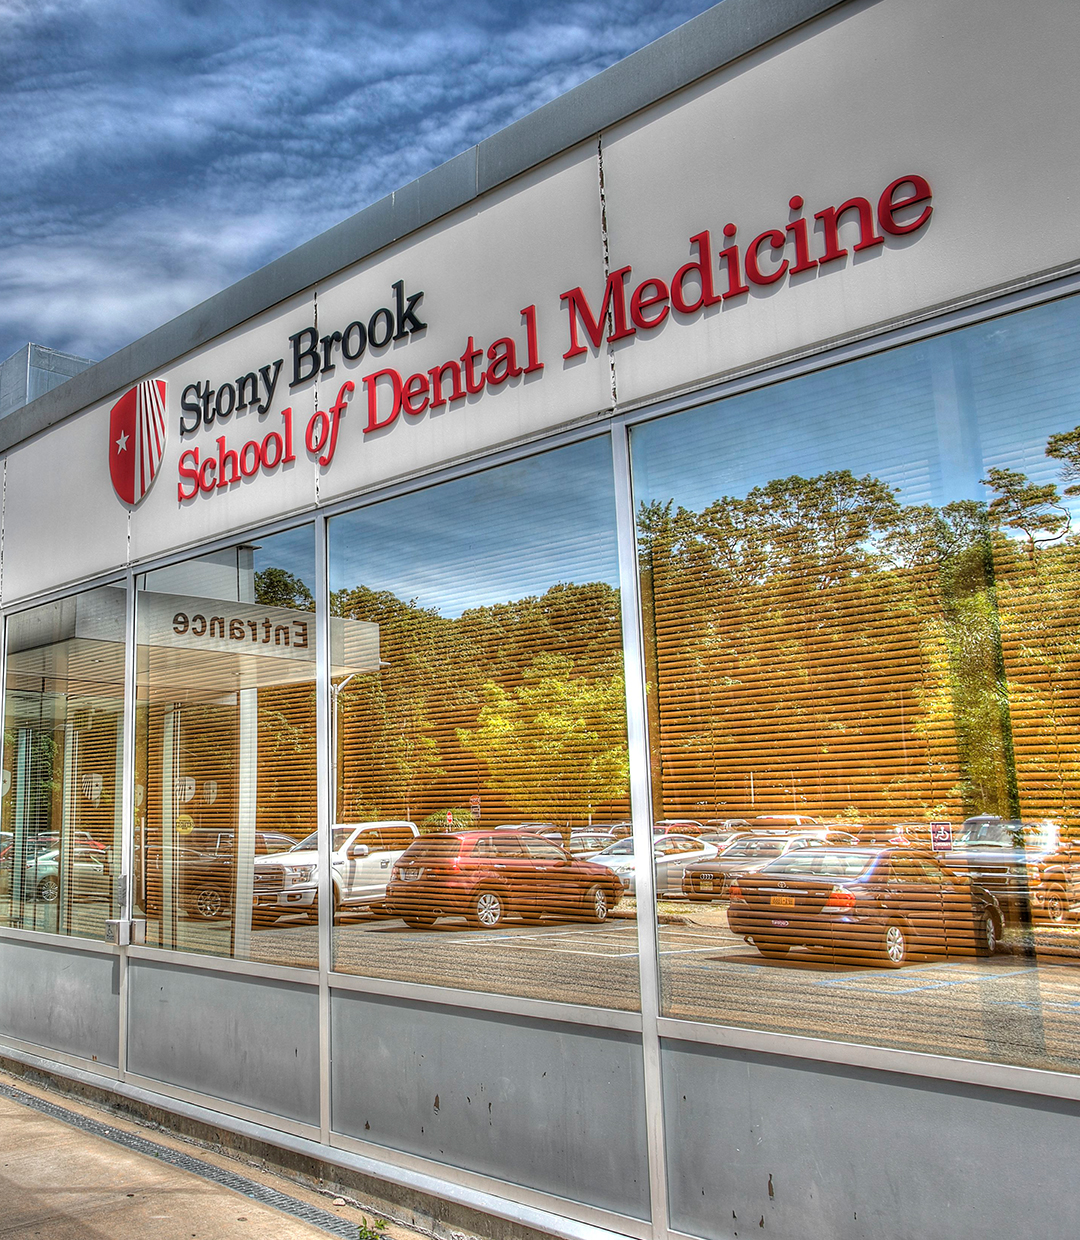 School of Dental Medicine